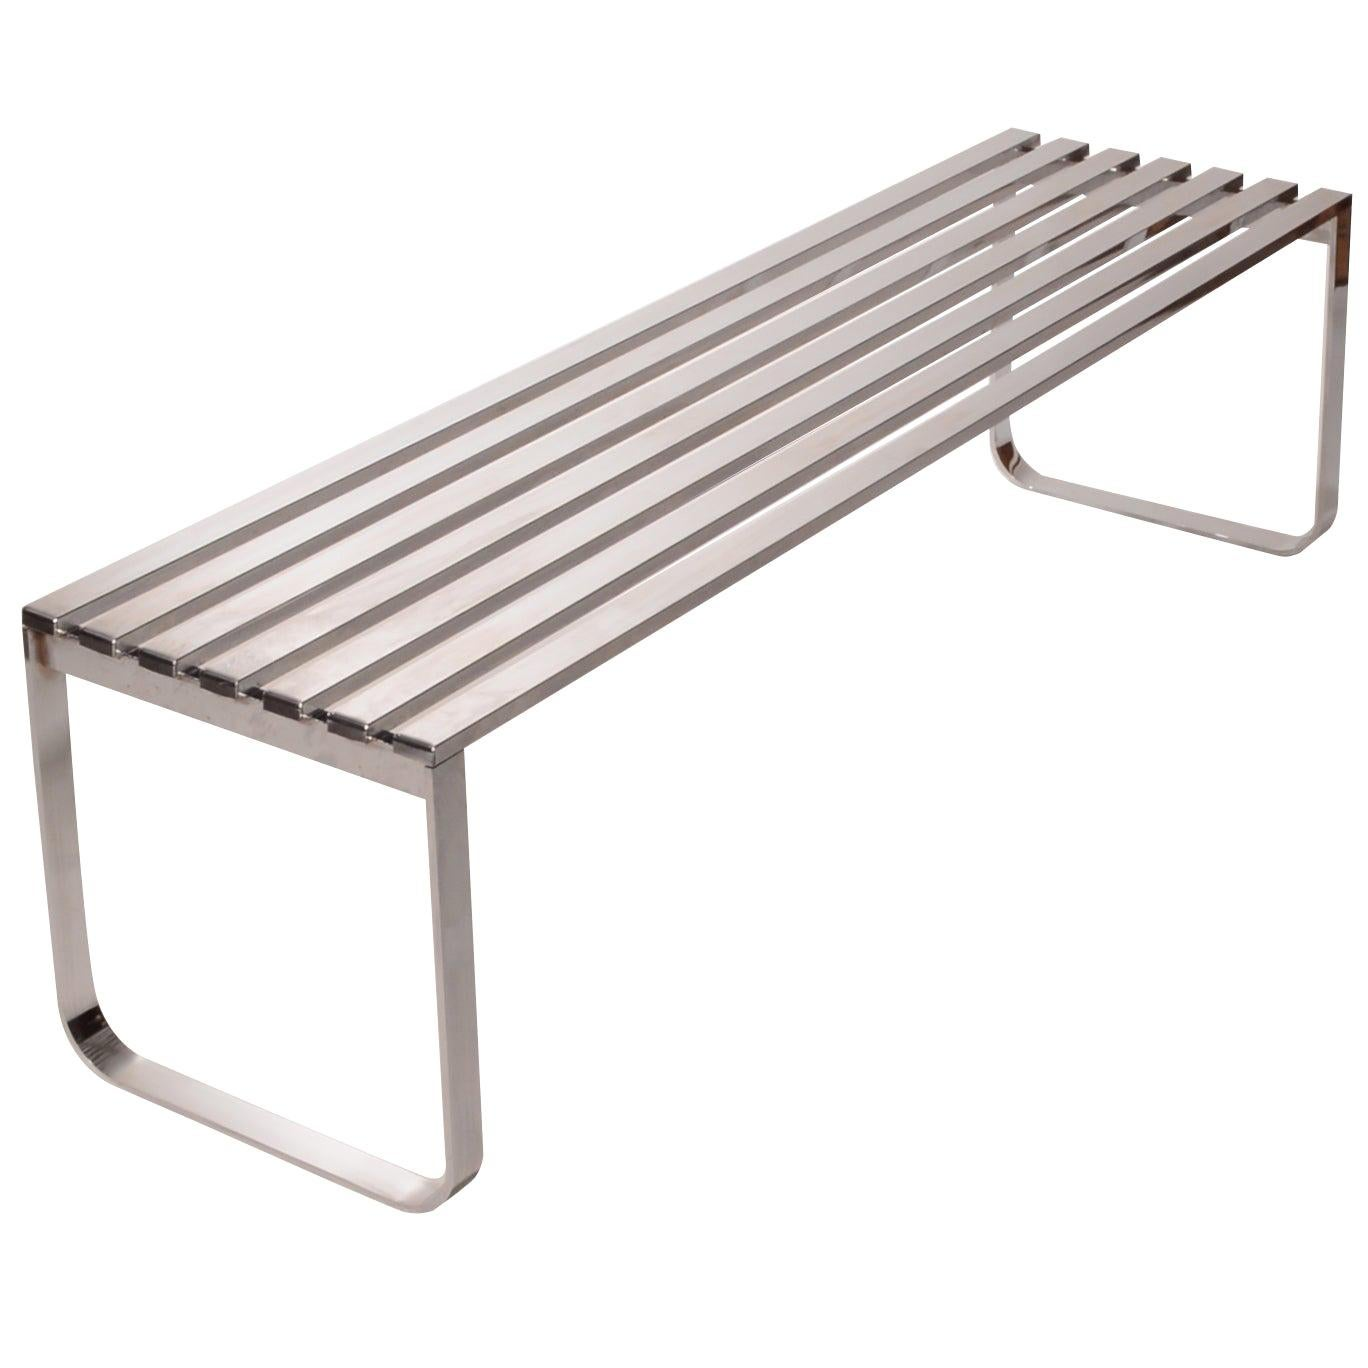 Design Institute of America Chrome Slat Bench by Milo Baughman